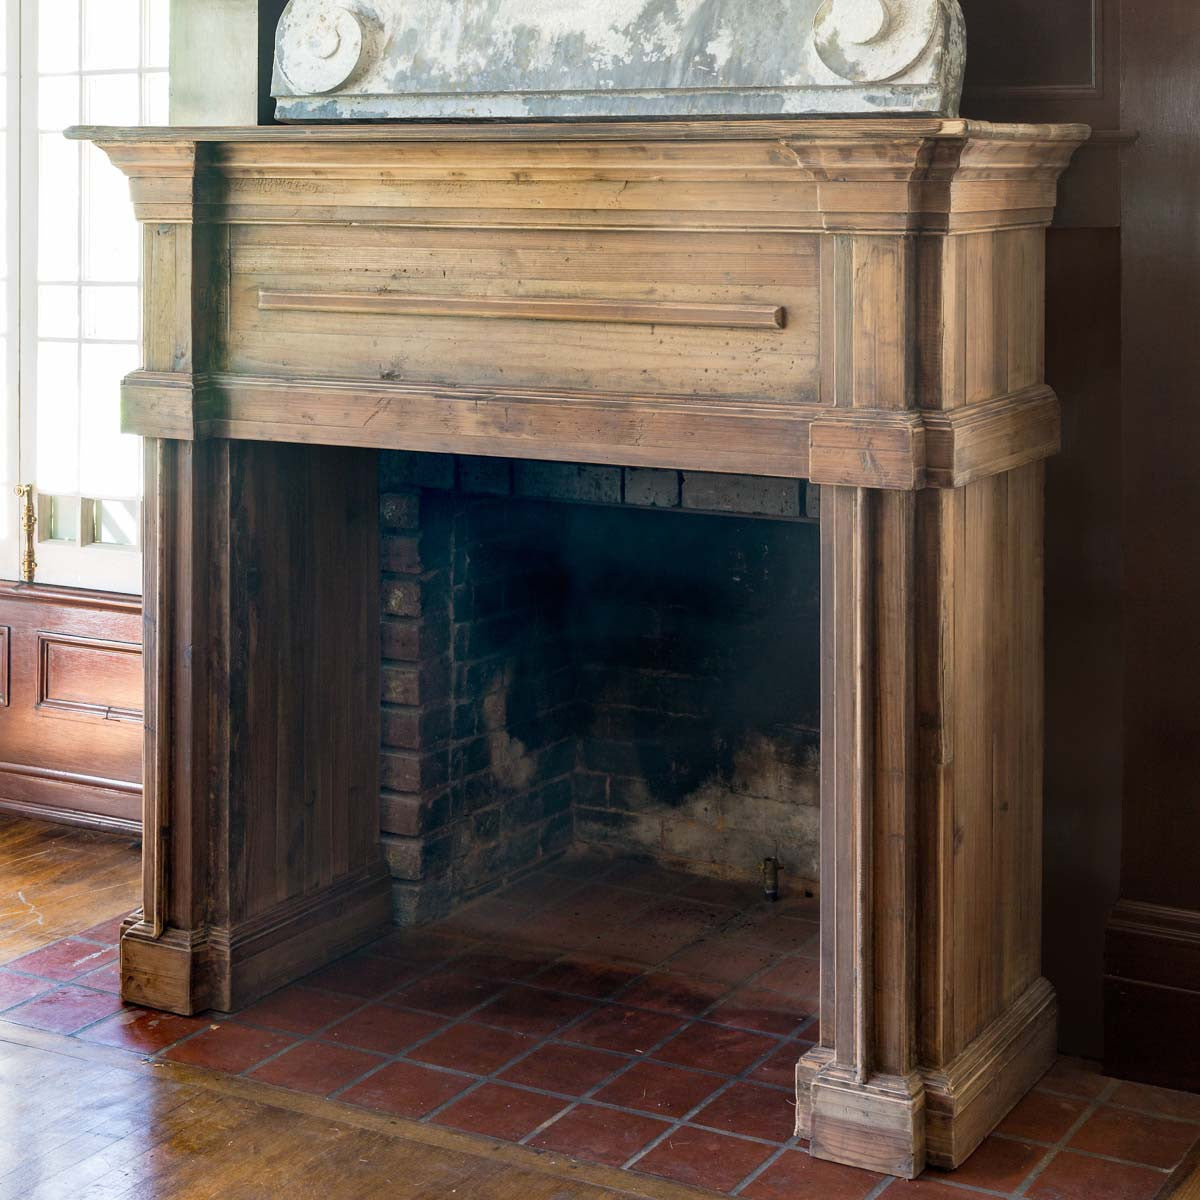 Reclaimed Pine Fireplace Mantel - ETA 7/1/2020